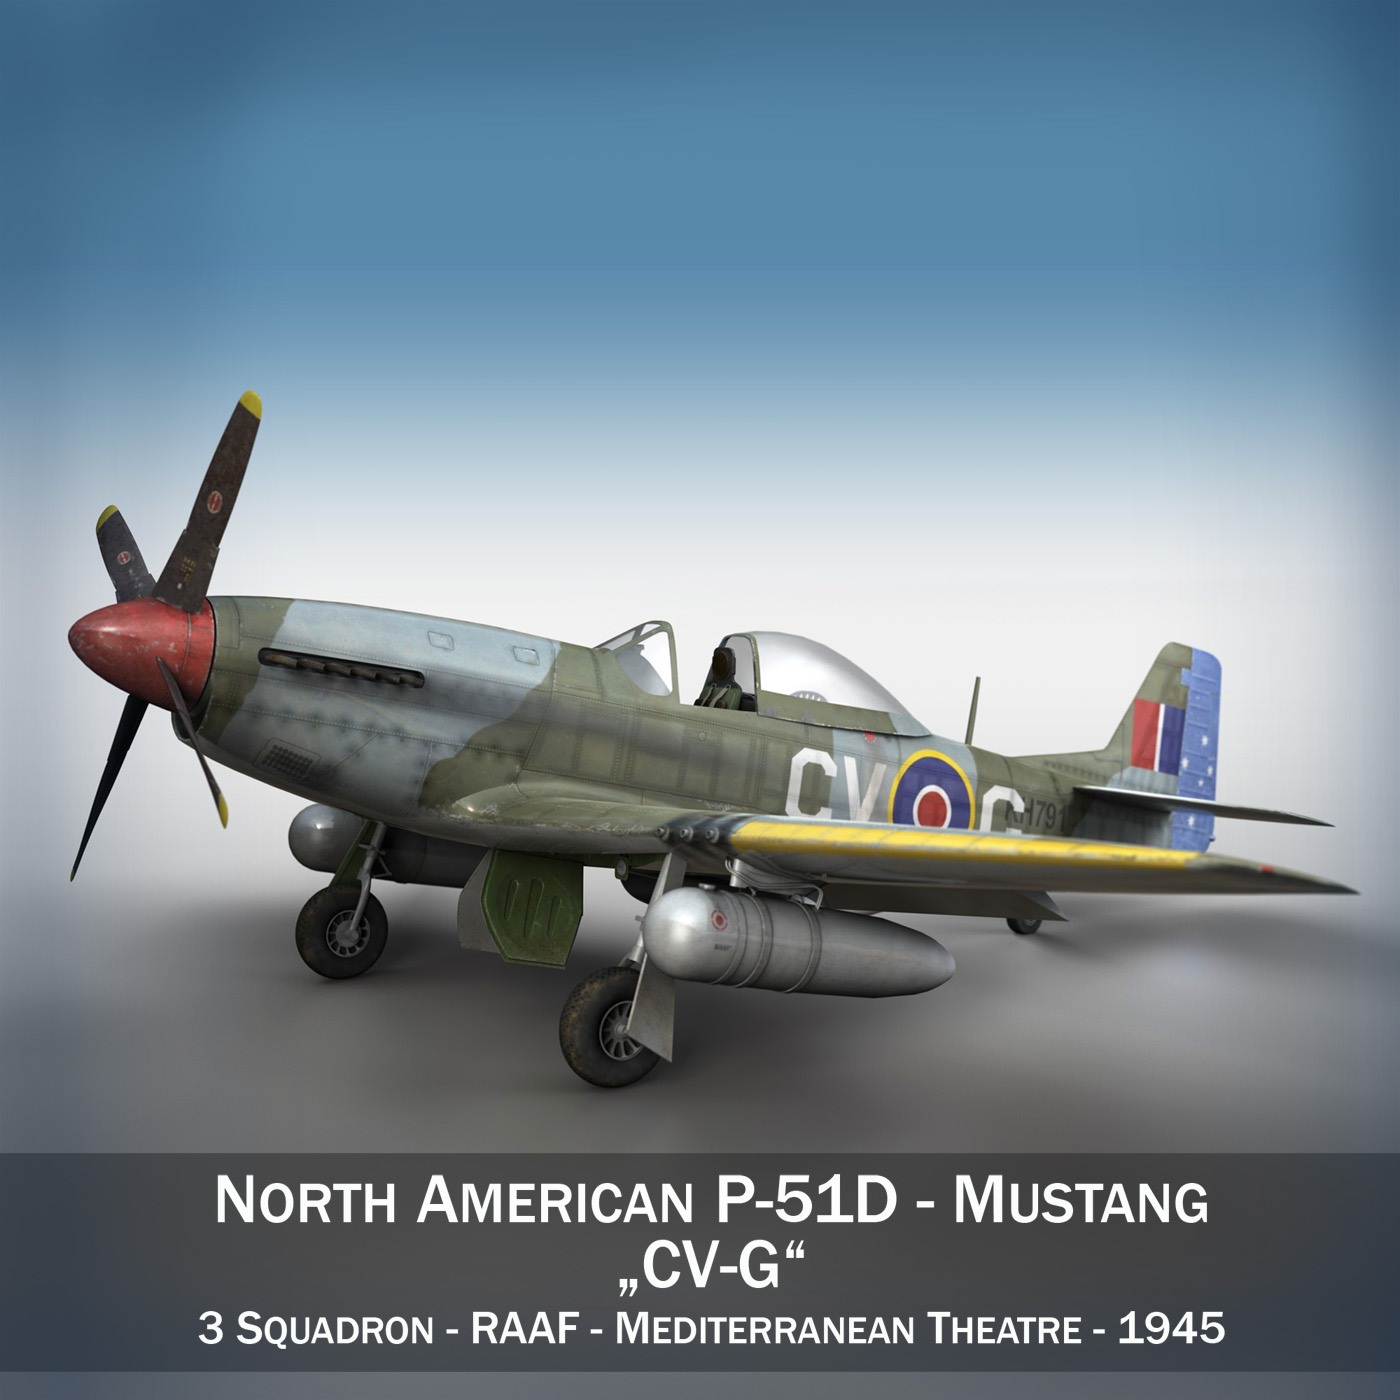 north american p-51d – cv-g 3d model 3ds fbx c4d lwo obj 188566